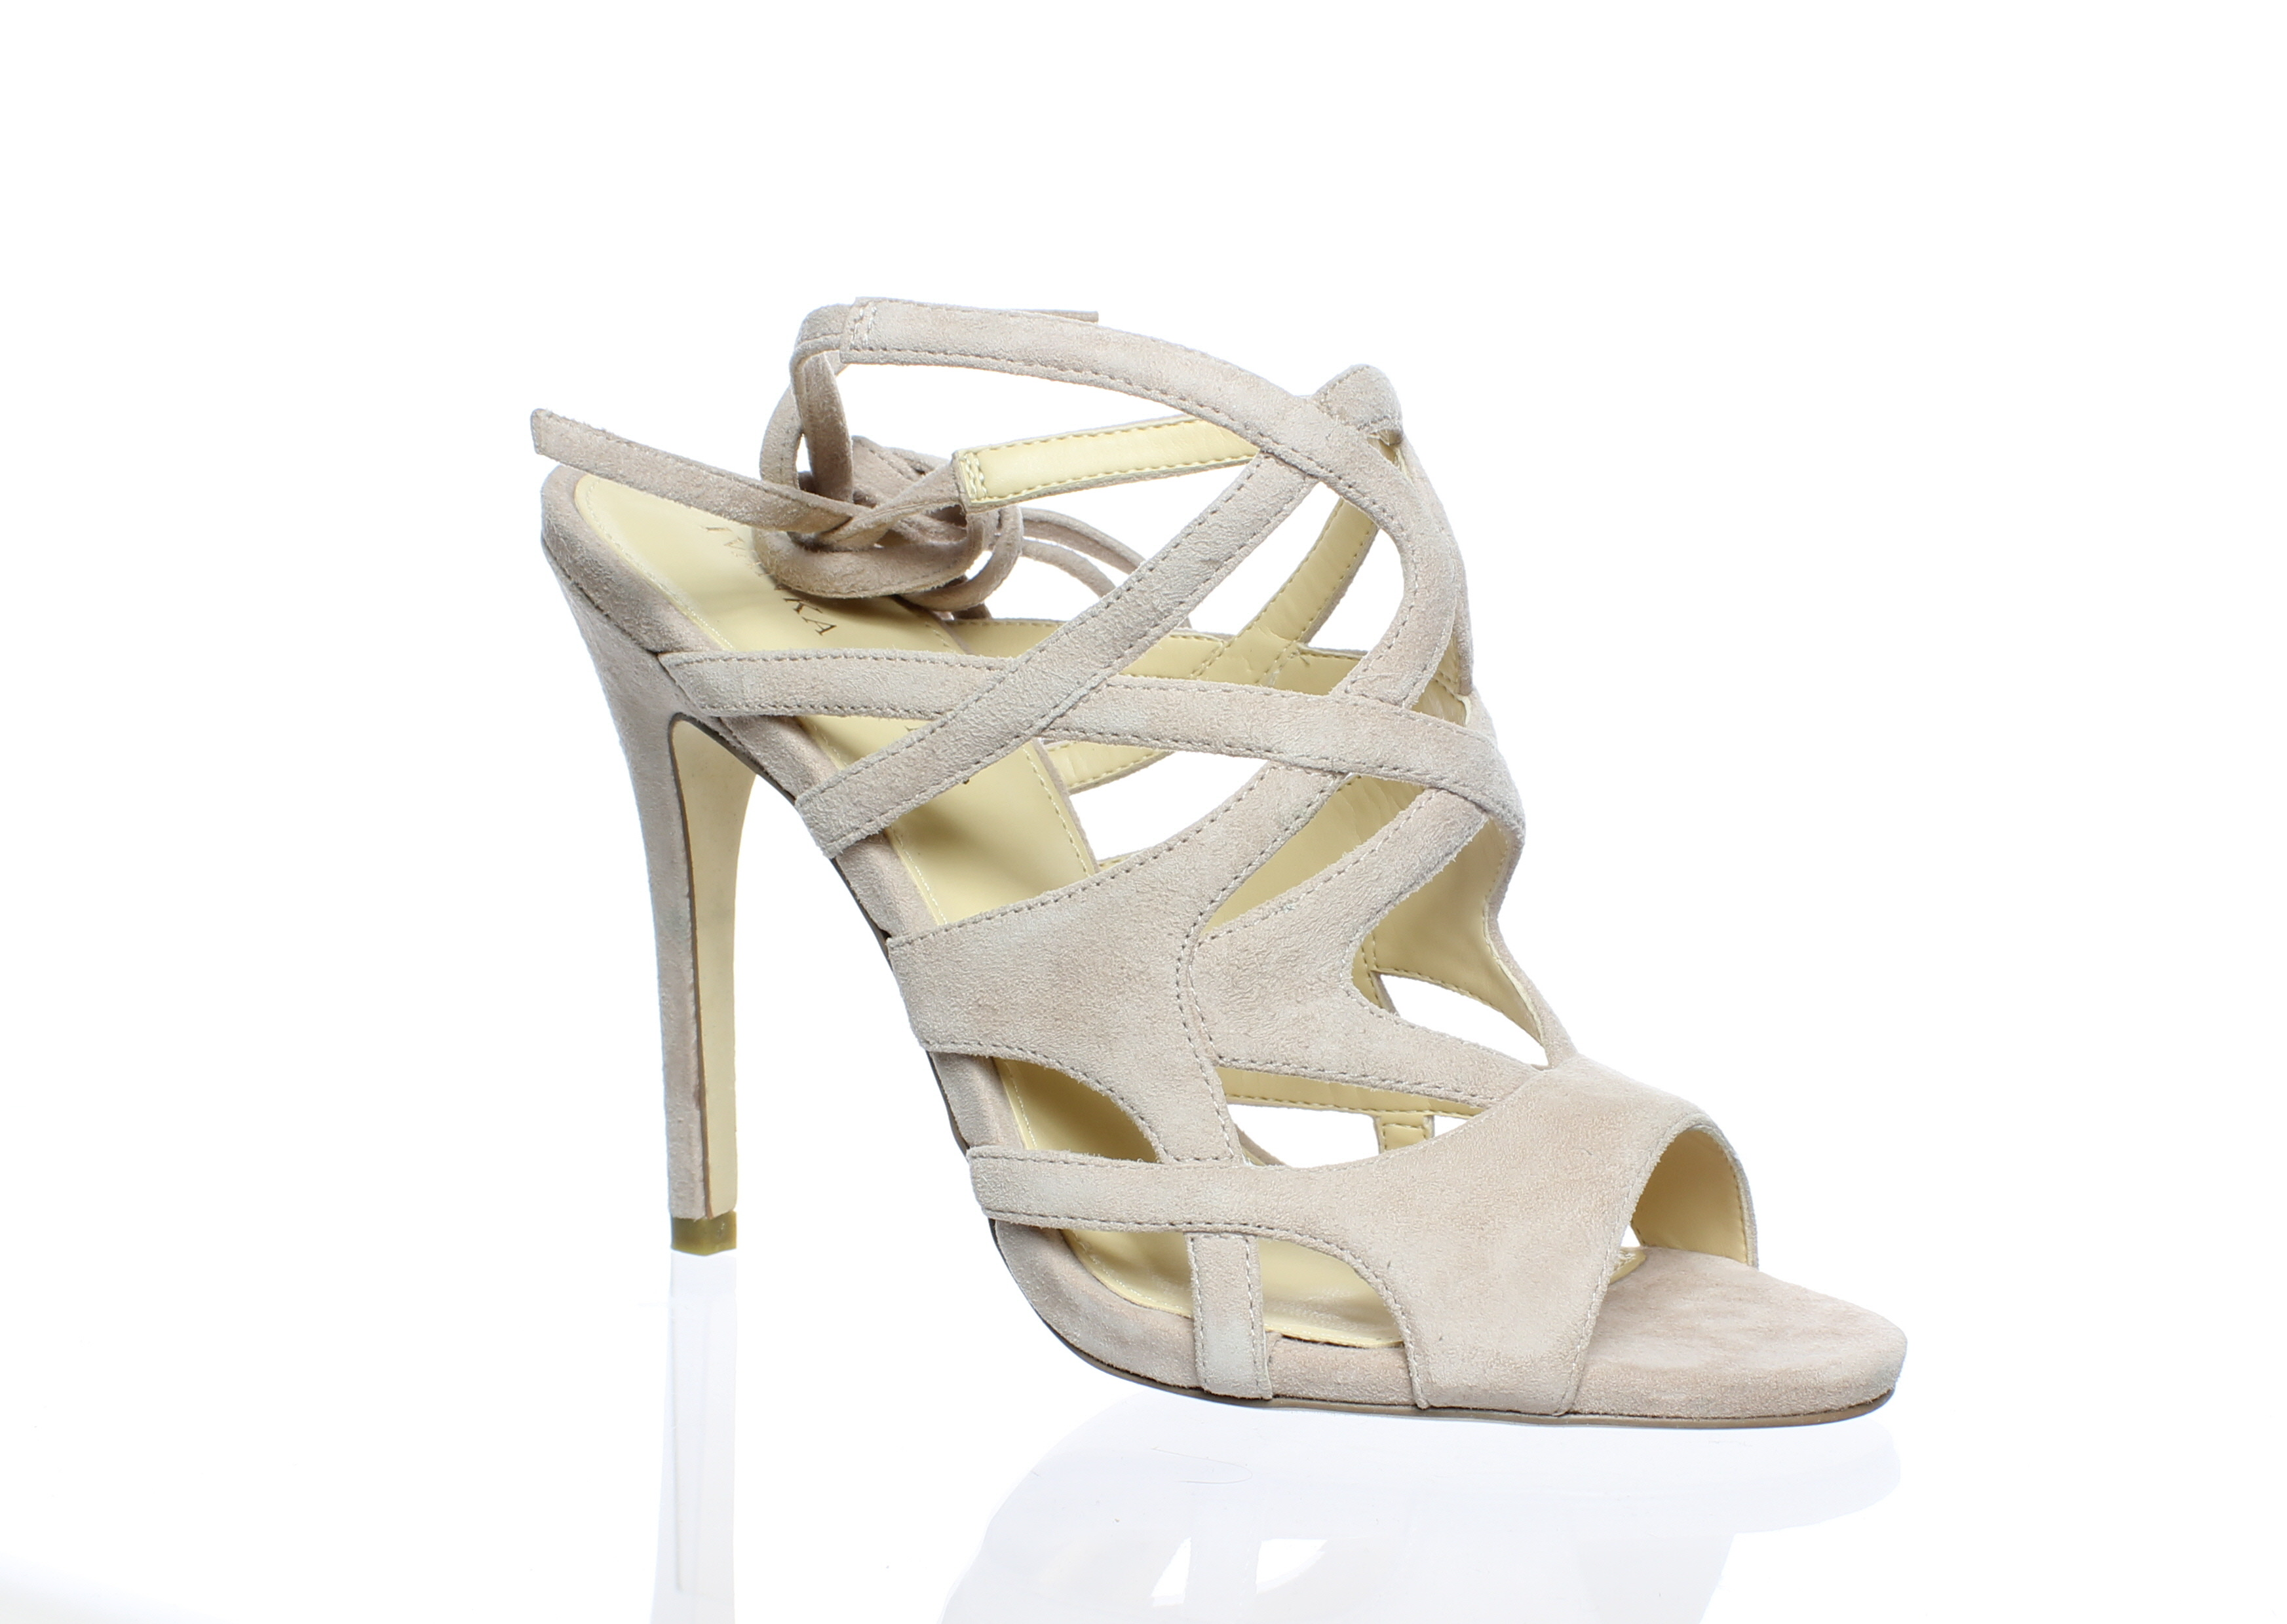 0e8727a530a Ivanka Trump Womens Hesther Natural Sandals Size 8.5 (53282 ...